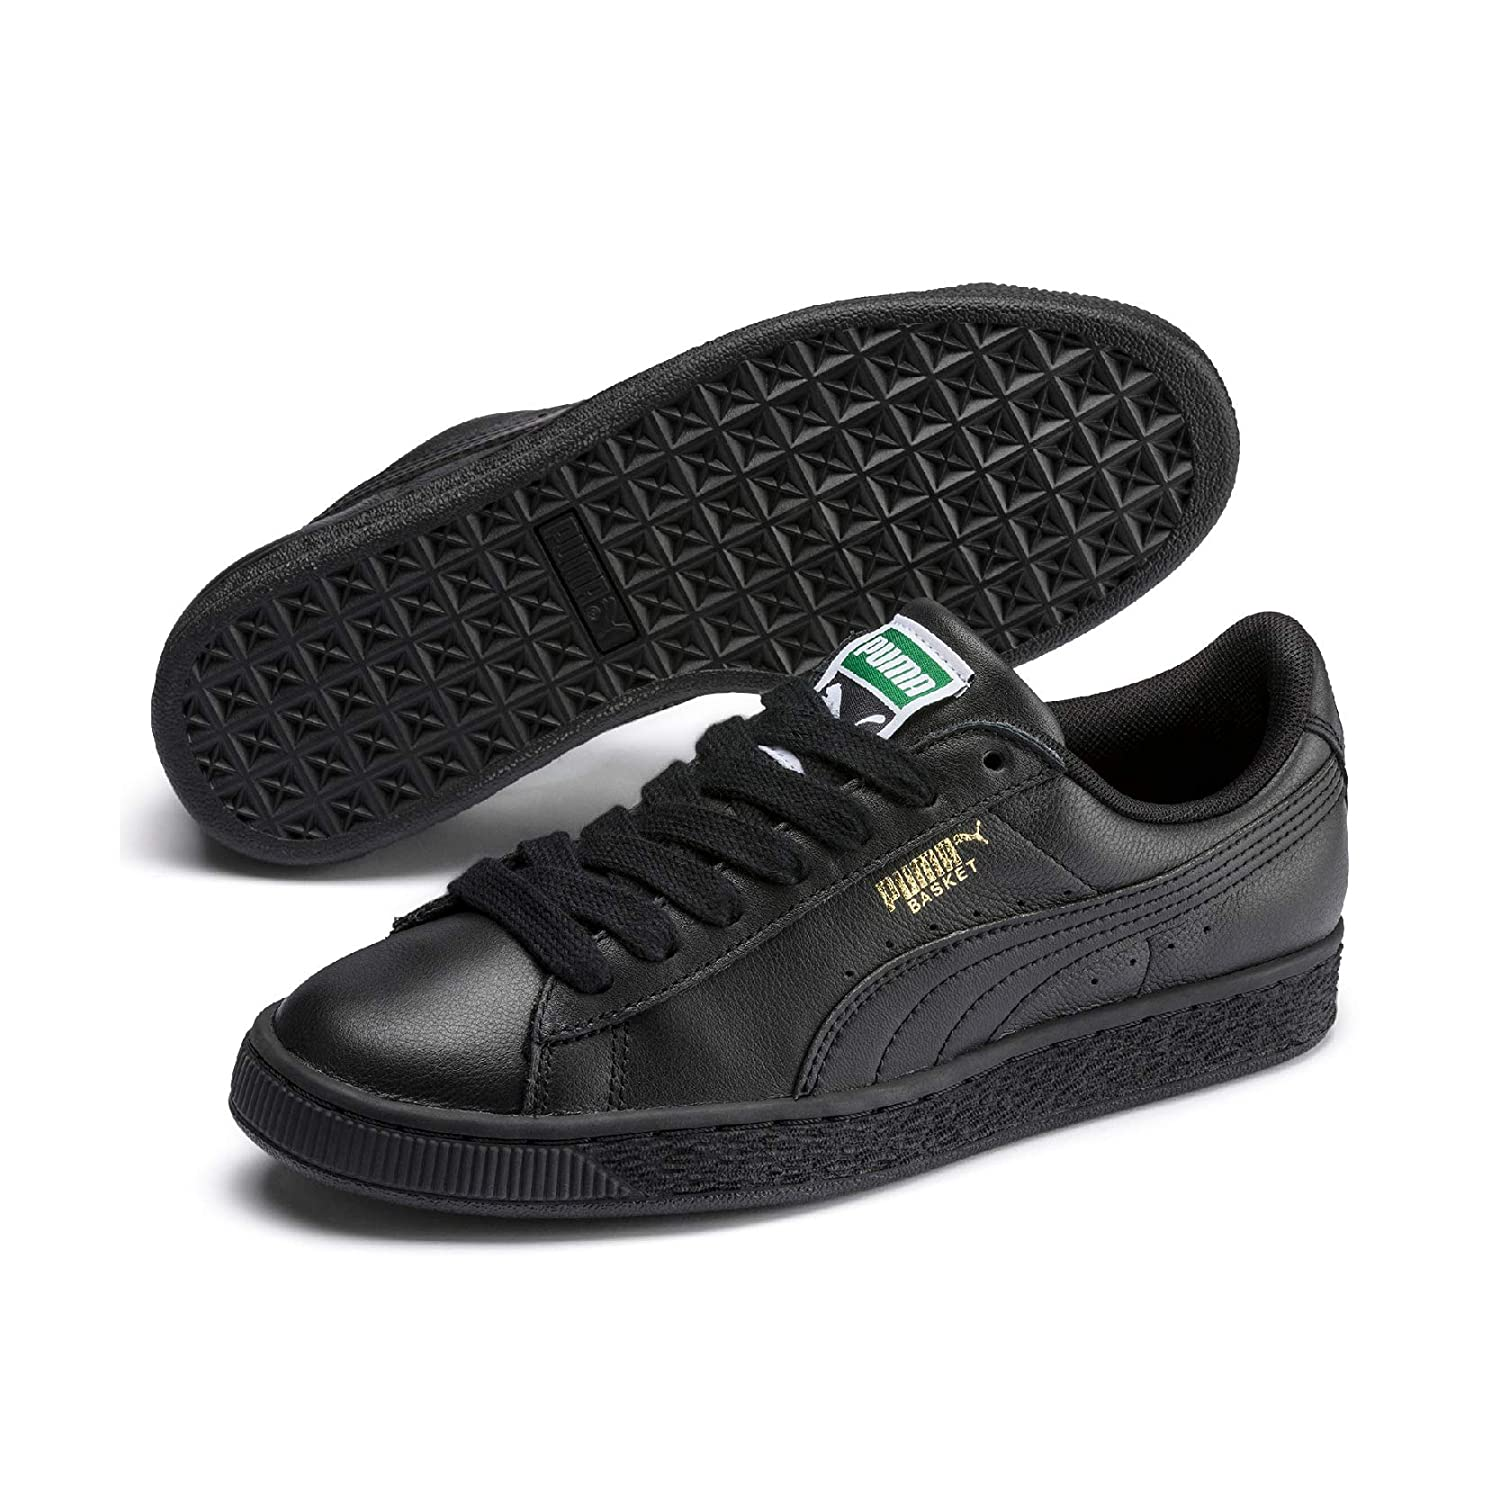 Black (Black-team gold) Puma Unisex Adults' Basket Classic LFS Low-Top Trainers